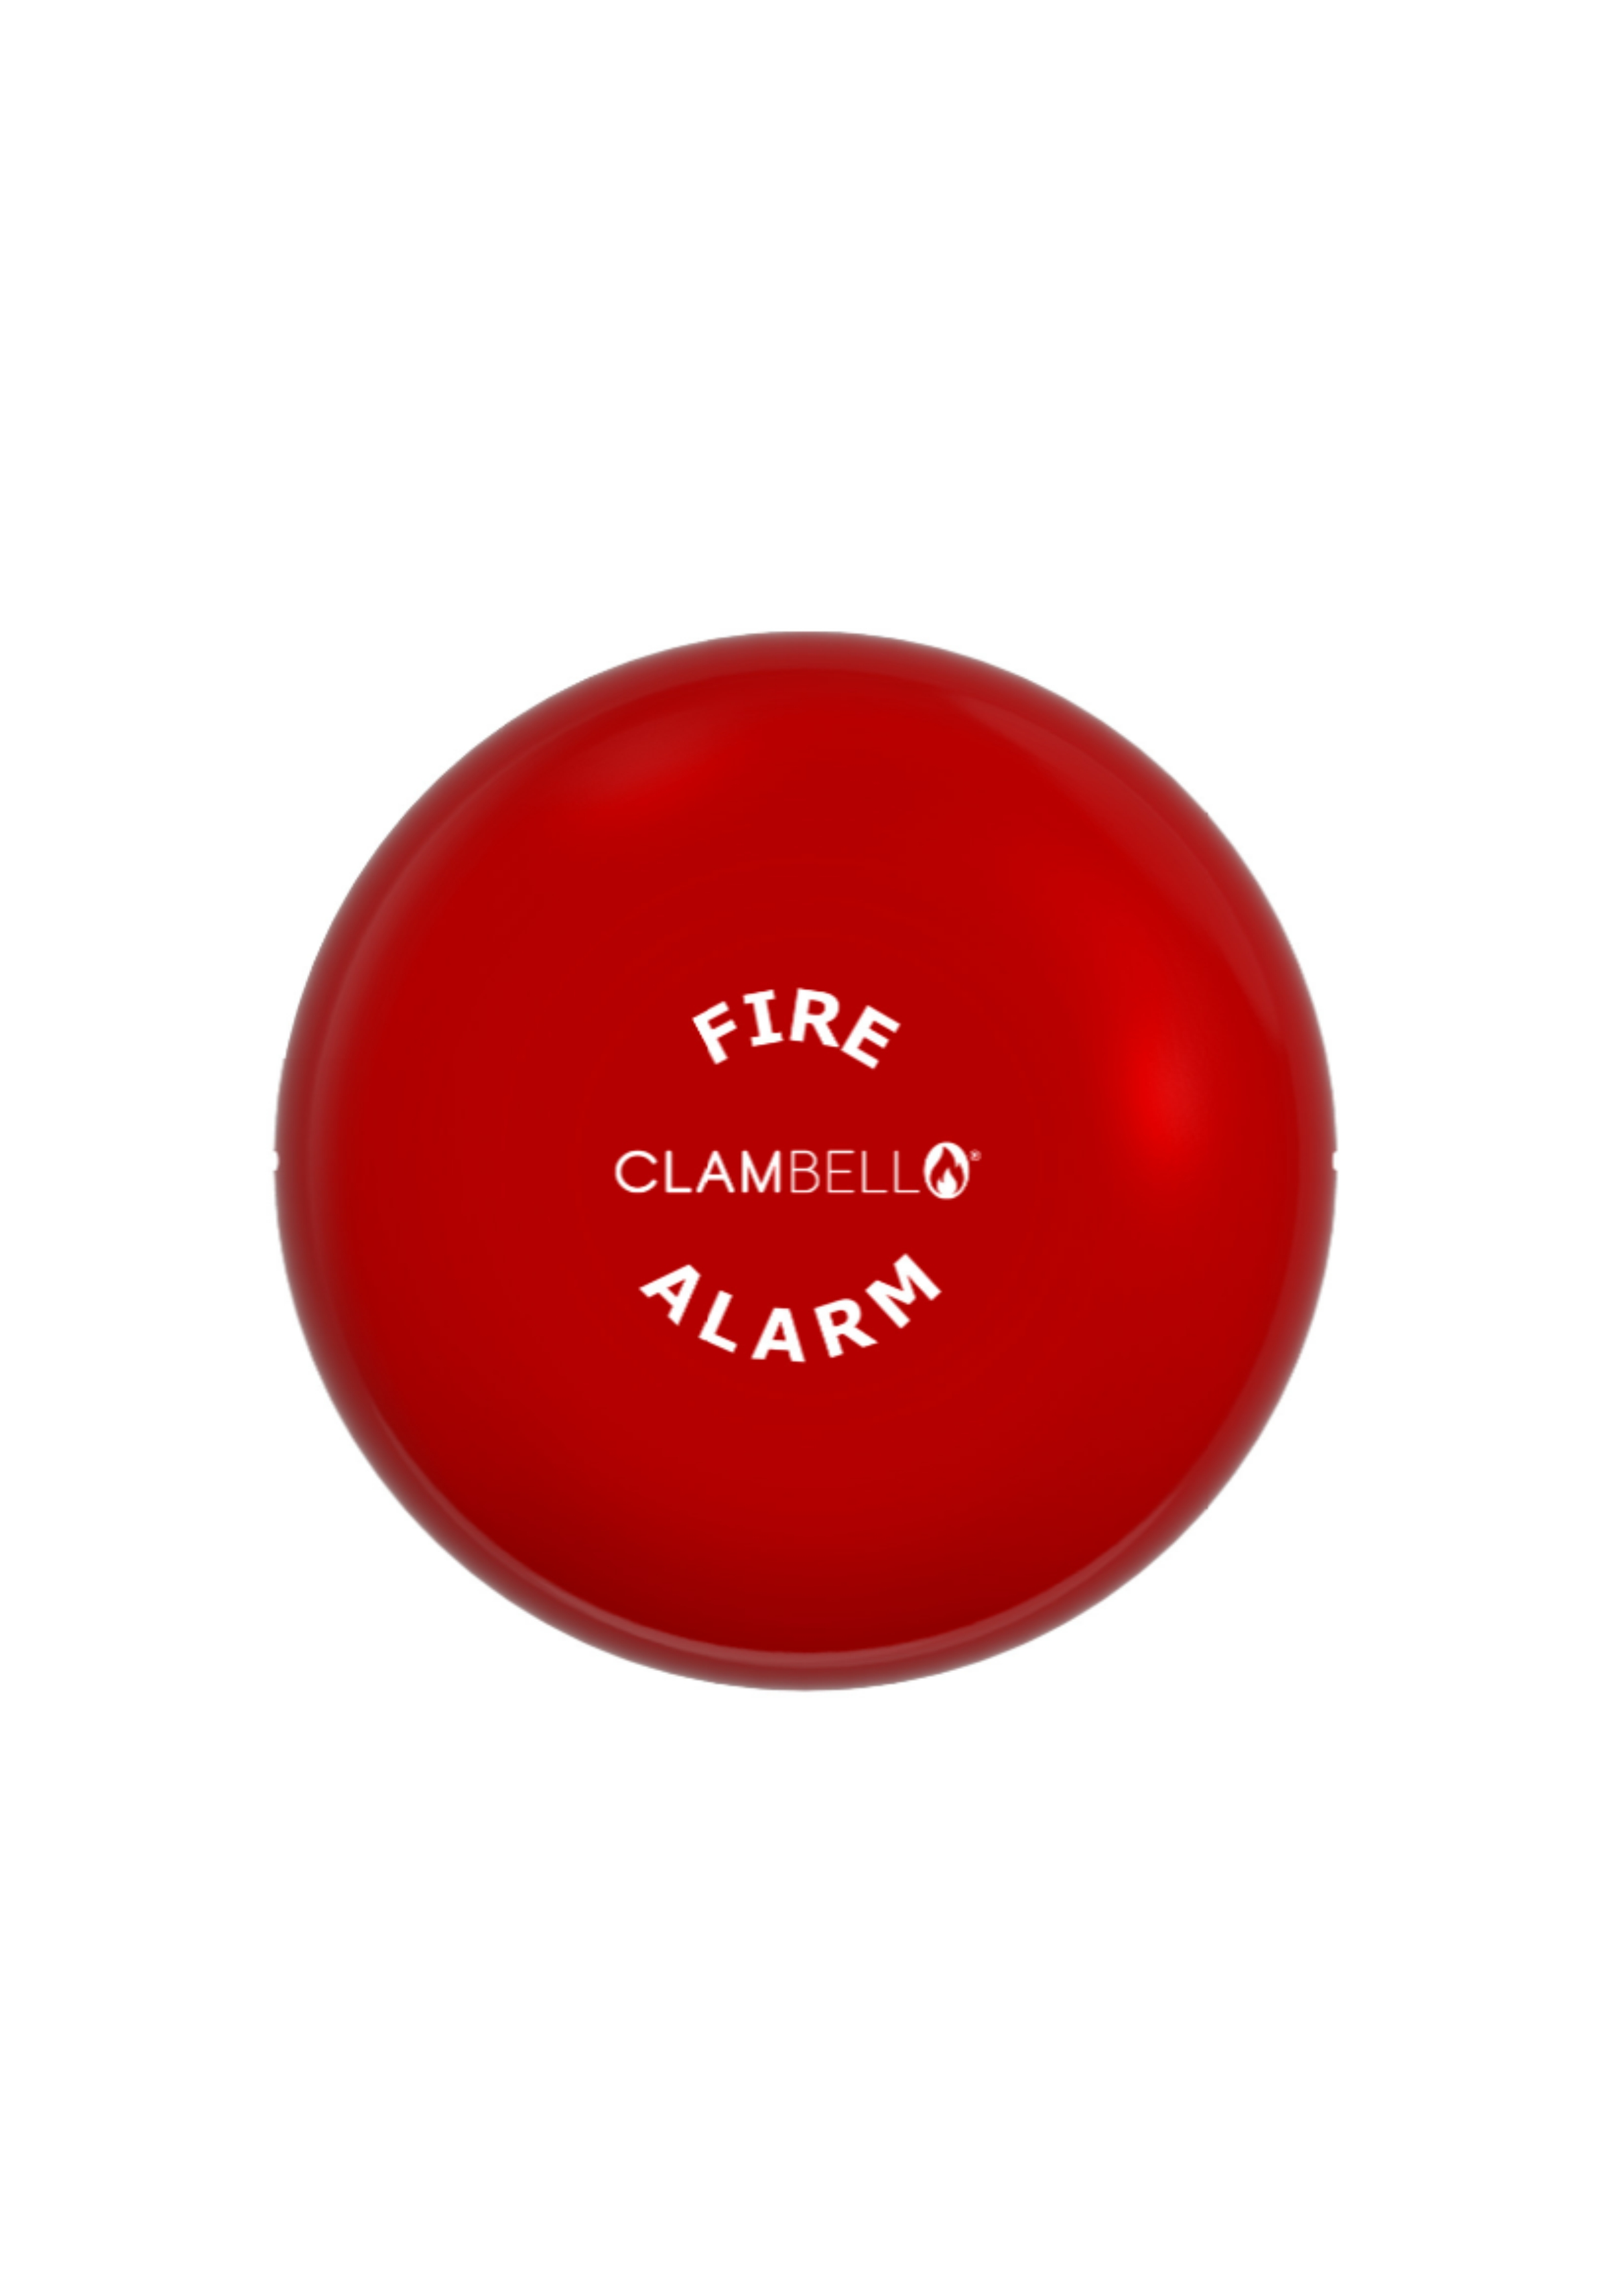 ClamBell 24V 6 inch Fire Alarm Bell - Shallow Base...